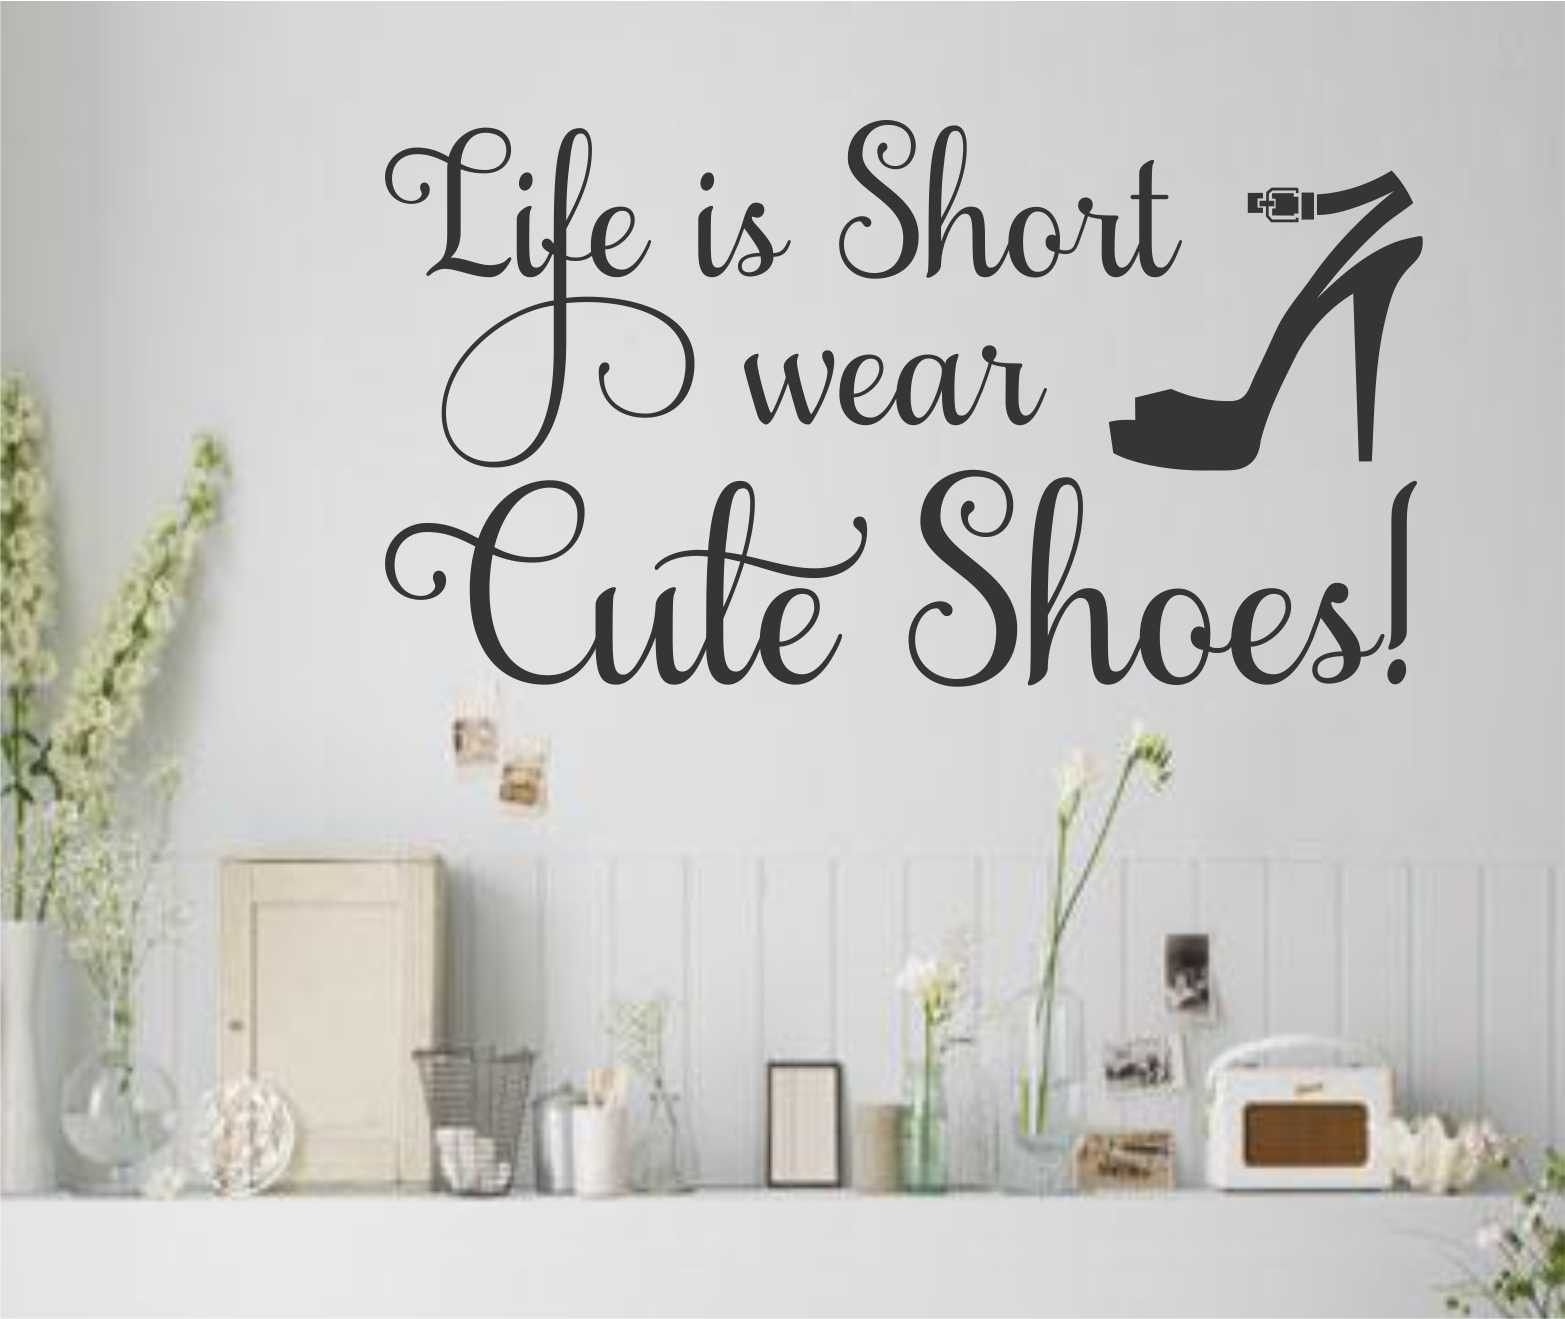 Life Wall Quotes Life Is Short Cute Shoes Decal  Wall Lettering  Vinyl Wall